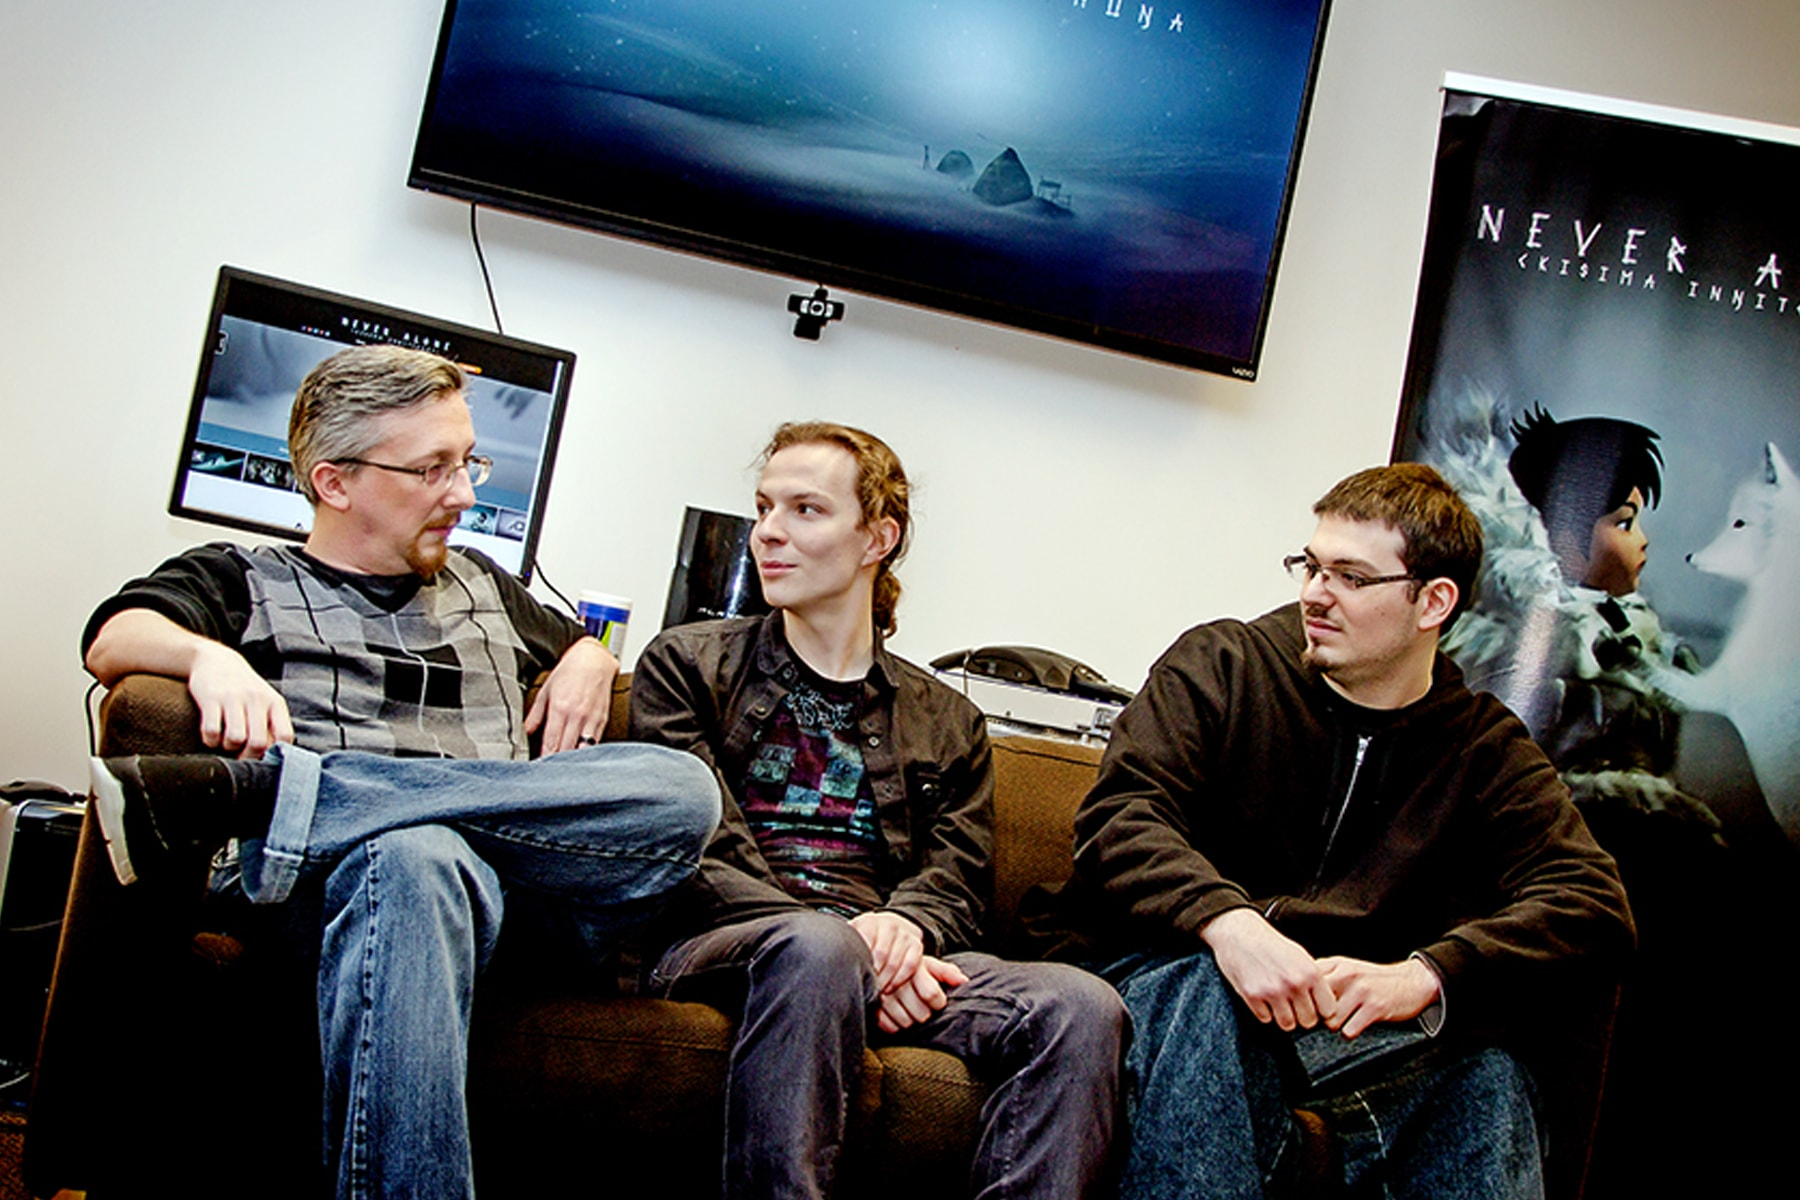 DigiPen alumni Matt Swanson, Alexei Gill, and Vincent Leone sitting on a couch in the E-Line Media office